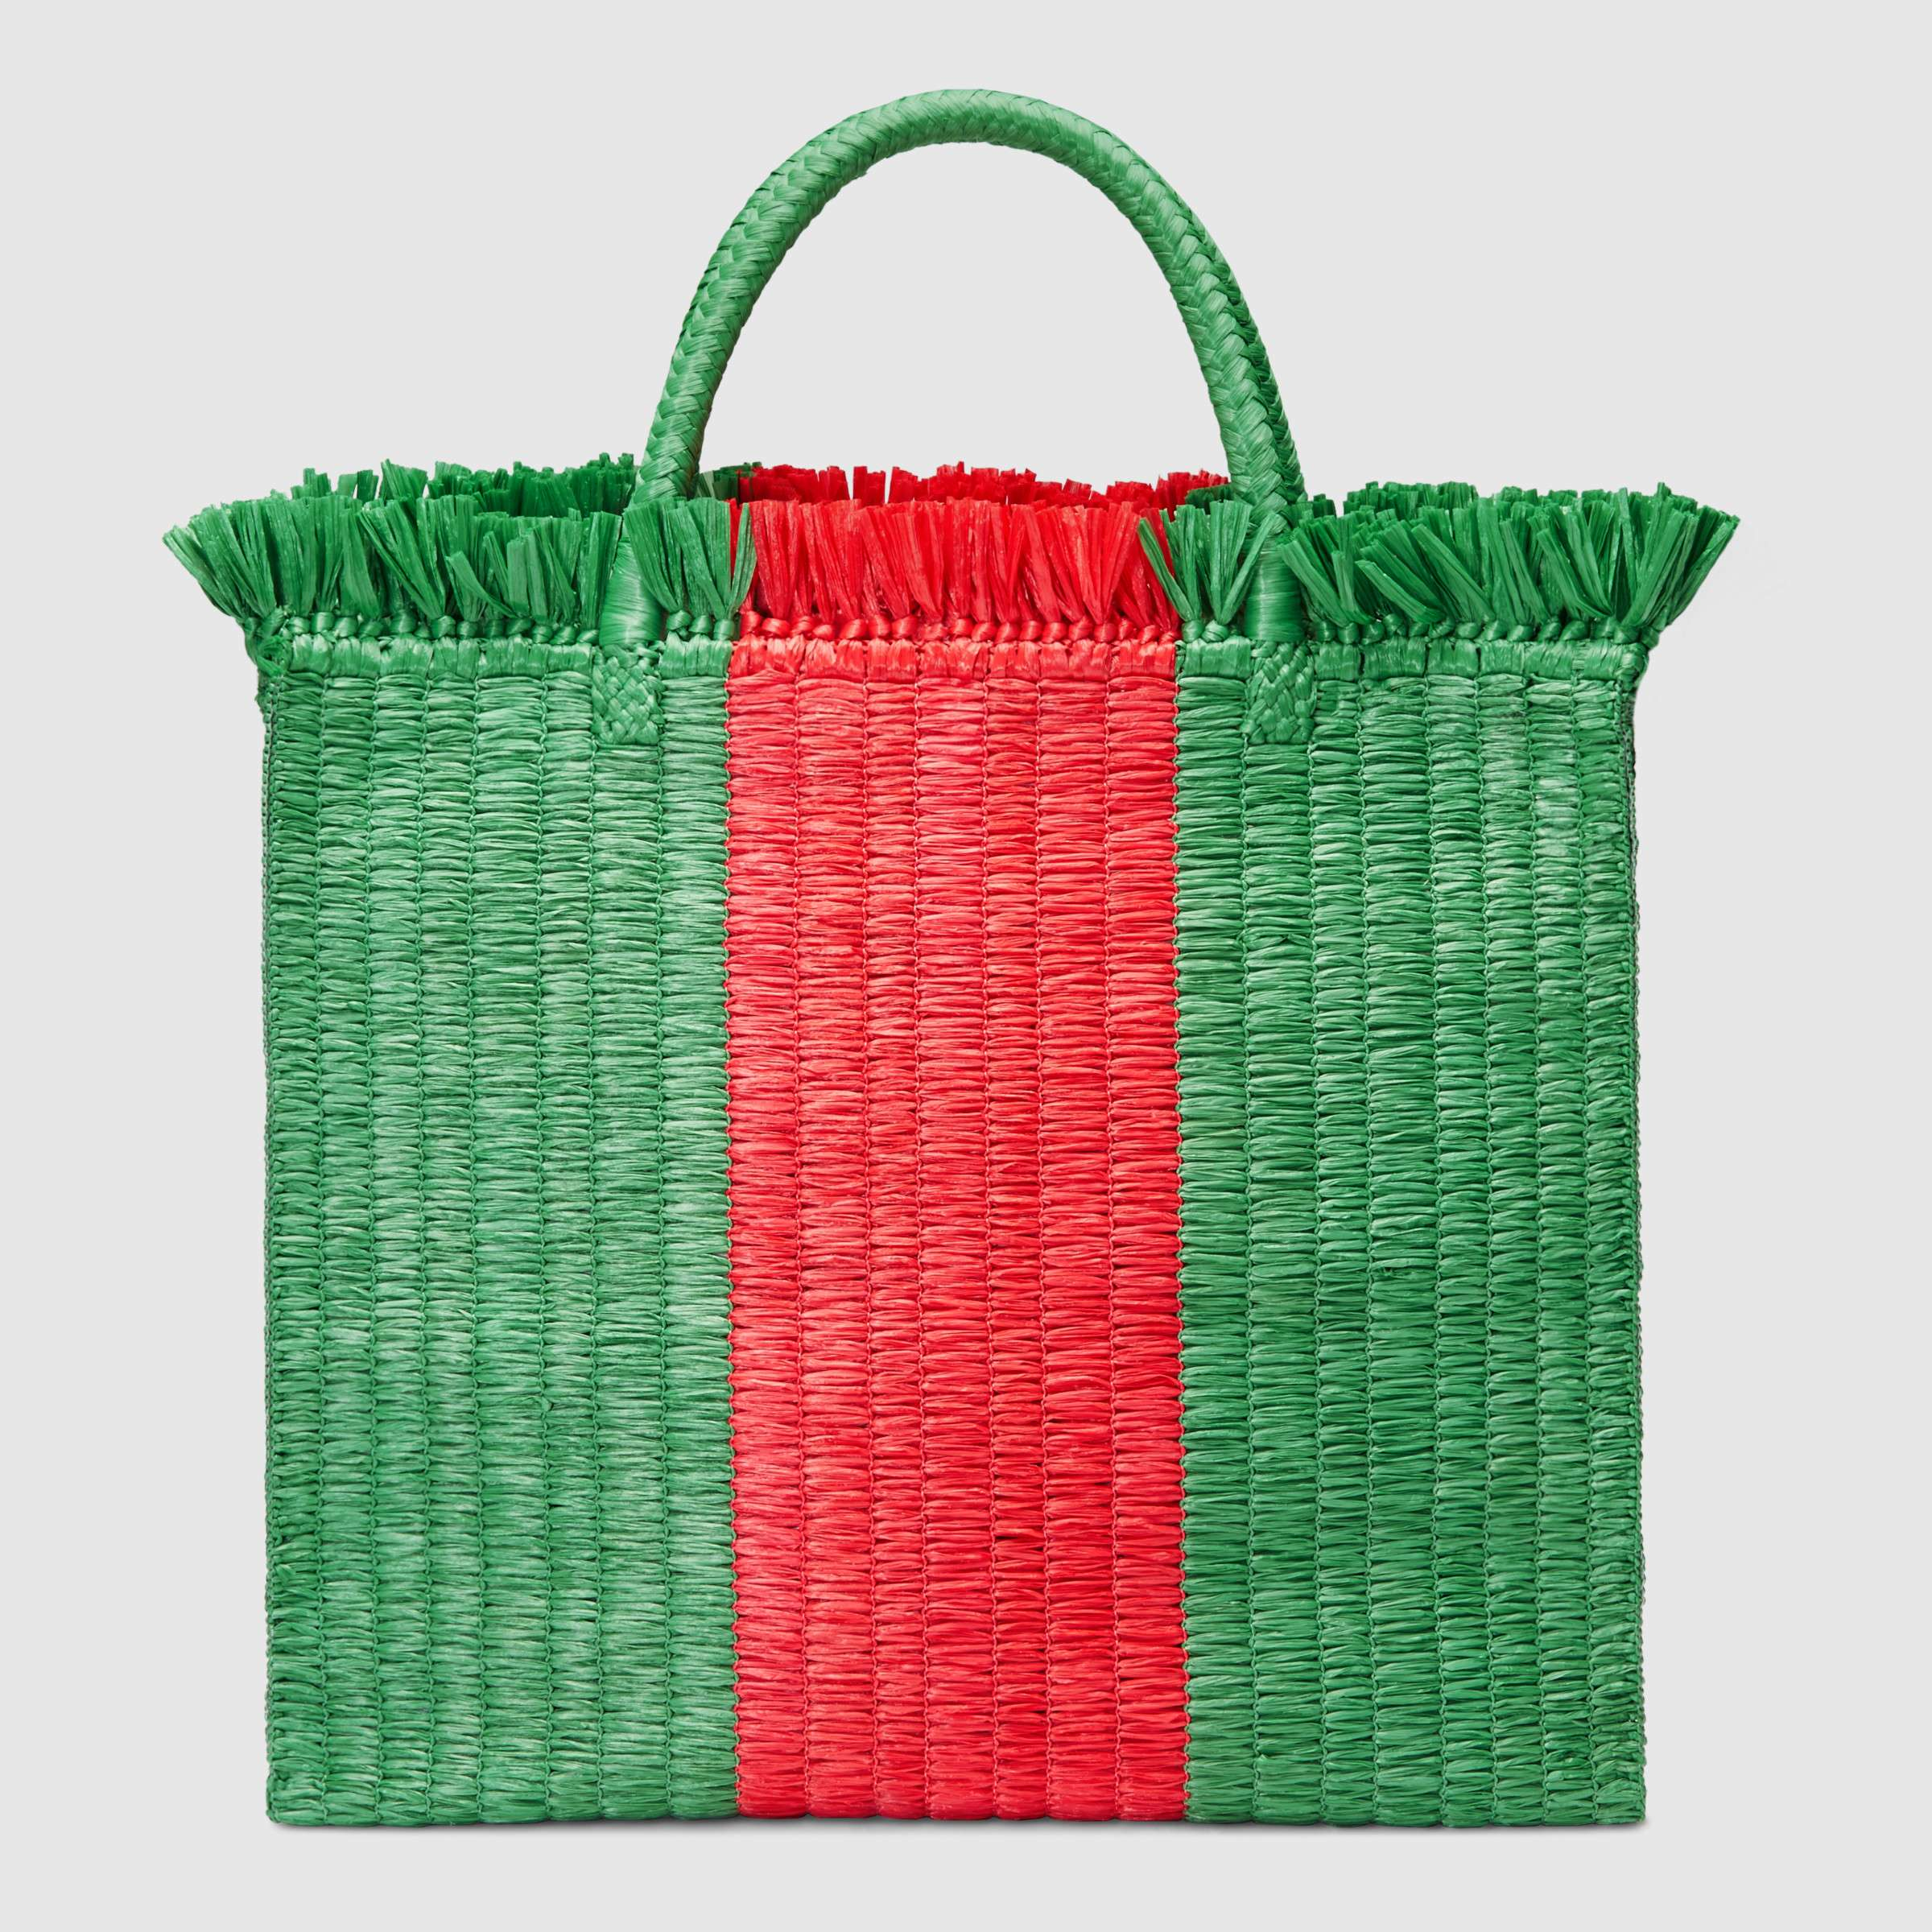 524810_9sva0_8460_001_100_0000_light-web-straw-large-top-handle-tote.jpg